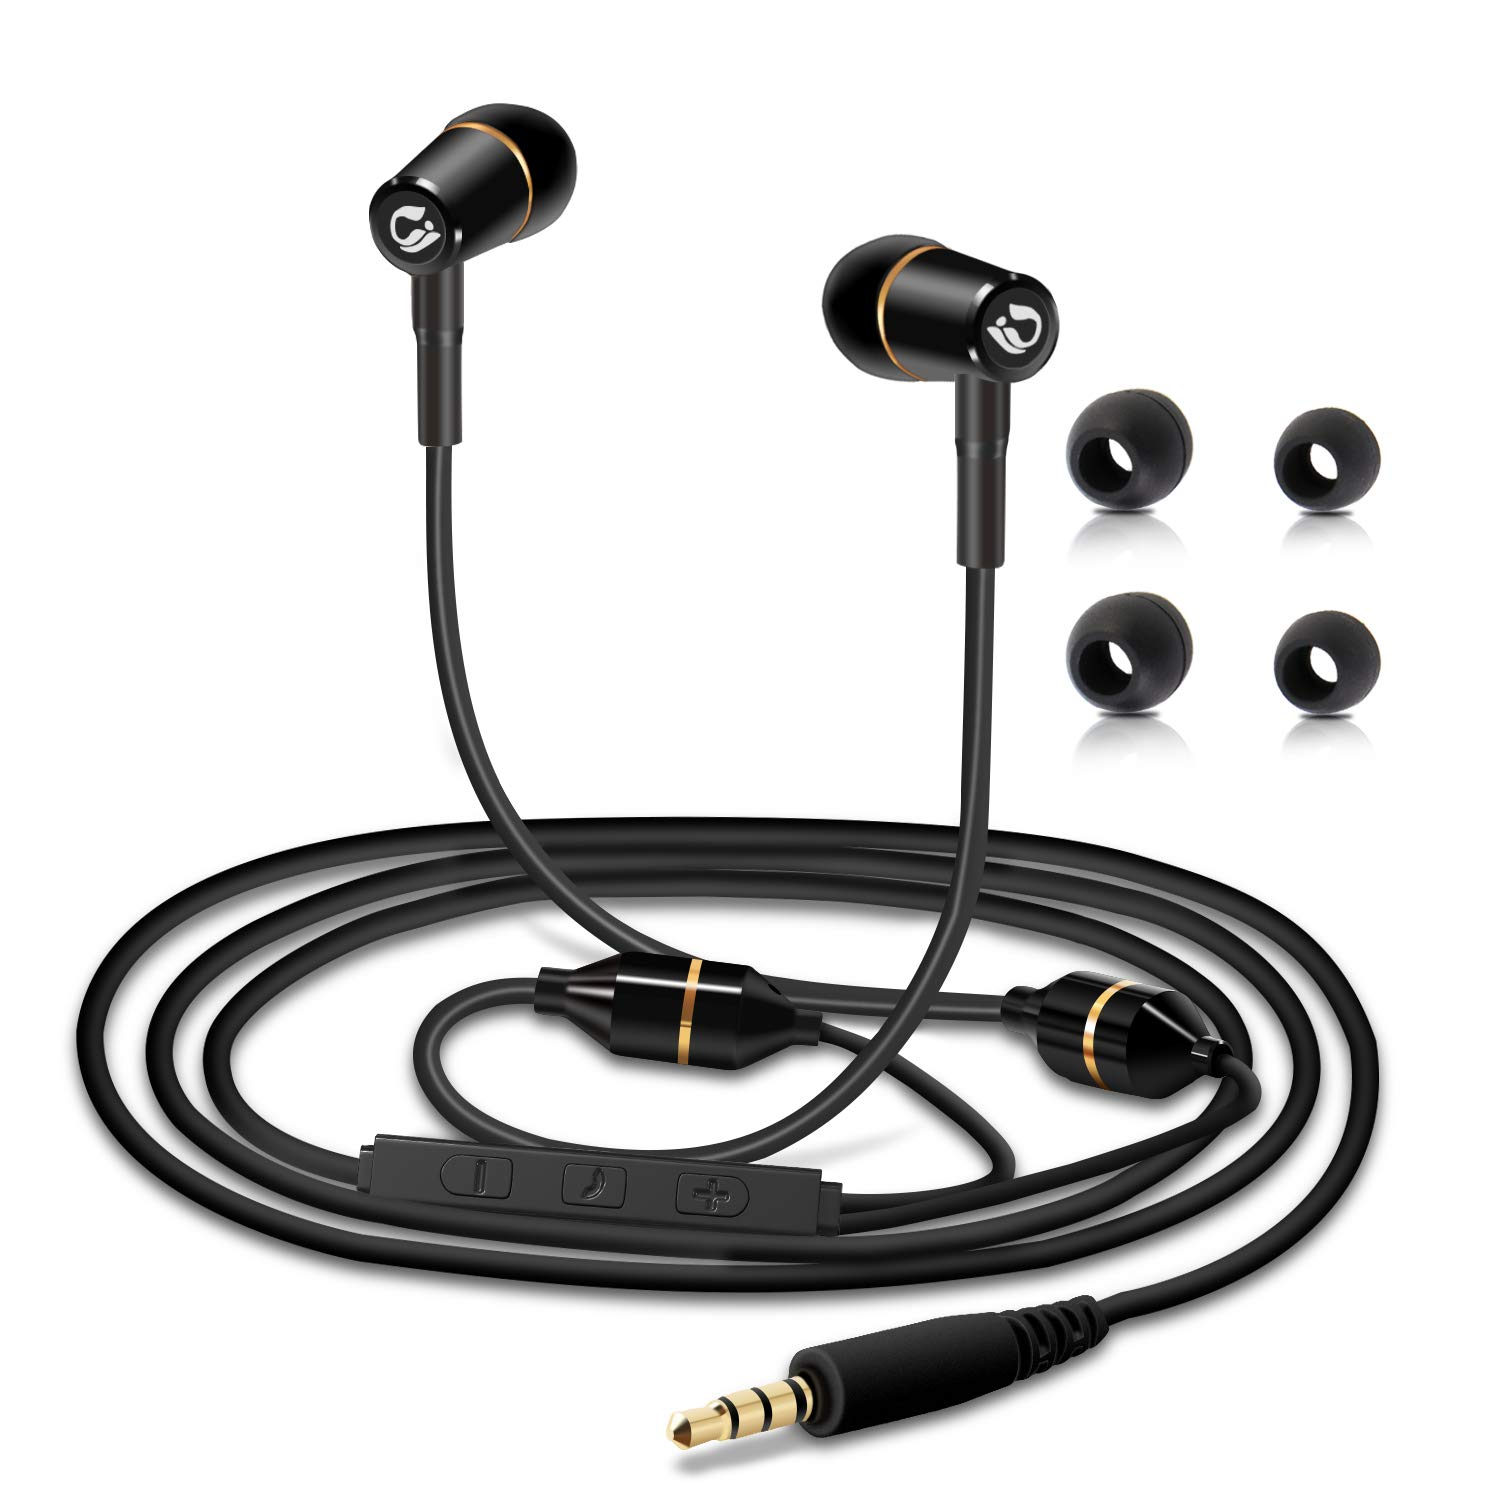 83fef4c993b Amazon.com: Tuisy Air Tube Headset - Upgraded Anti-Radiation Headphones,  EMF Protection Metal Binaural Earbuds Earphone with Microphone and Volume  Control, ...